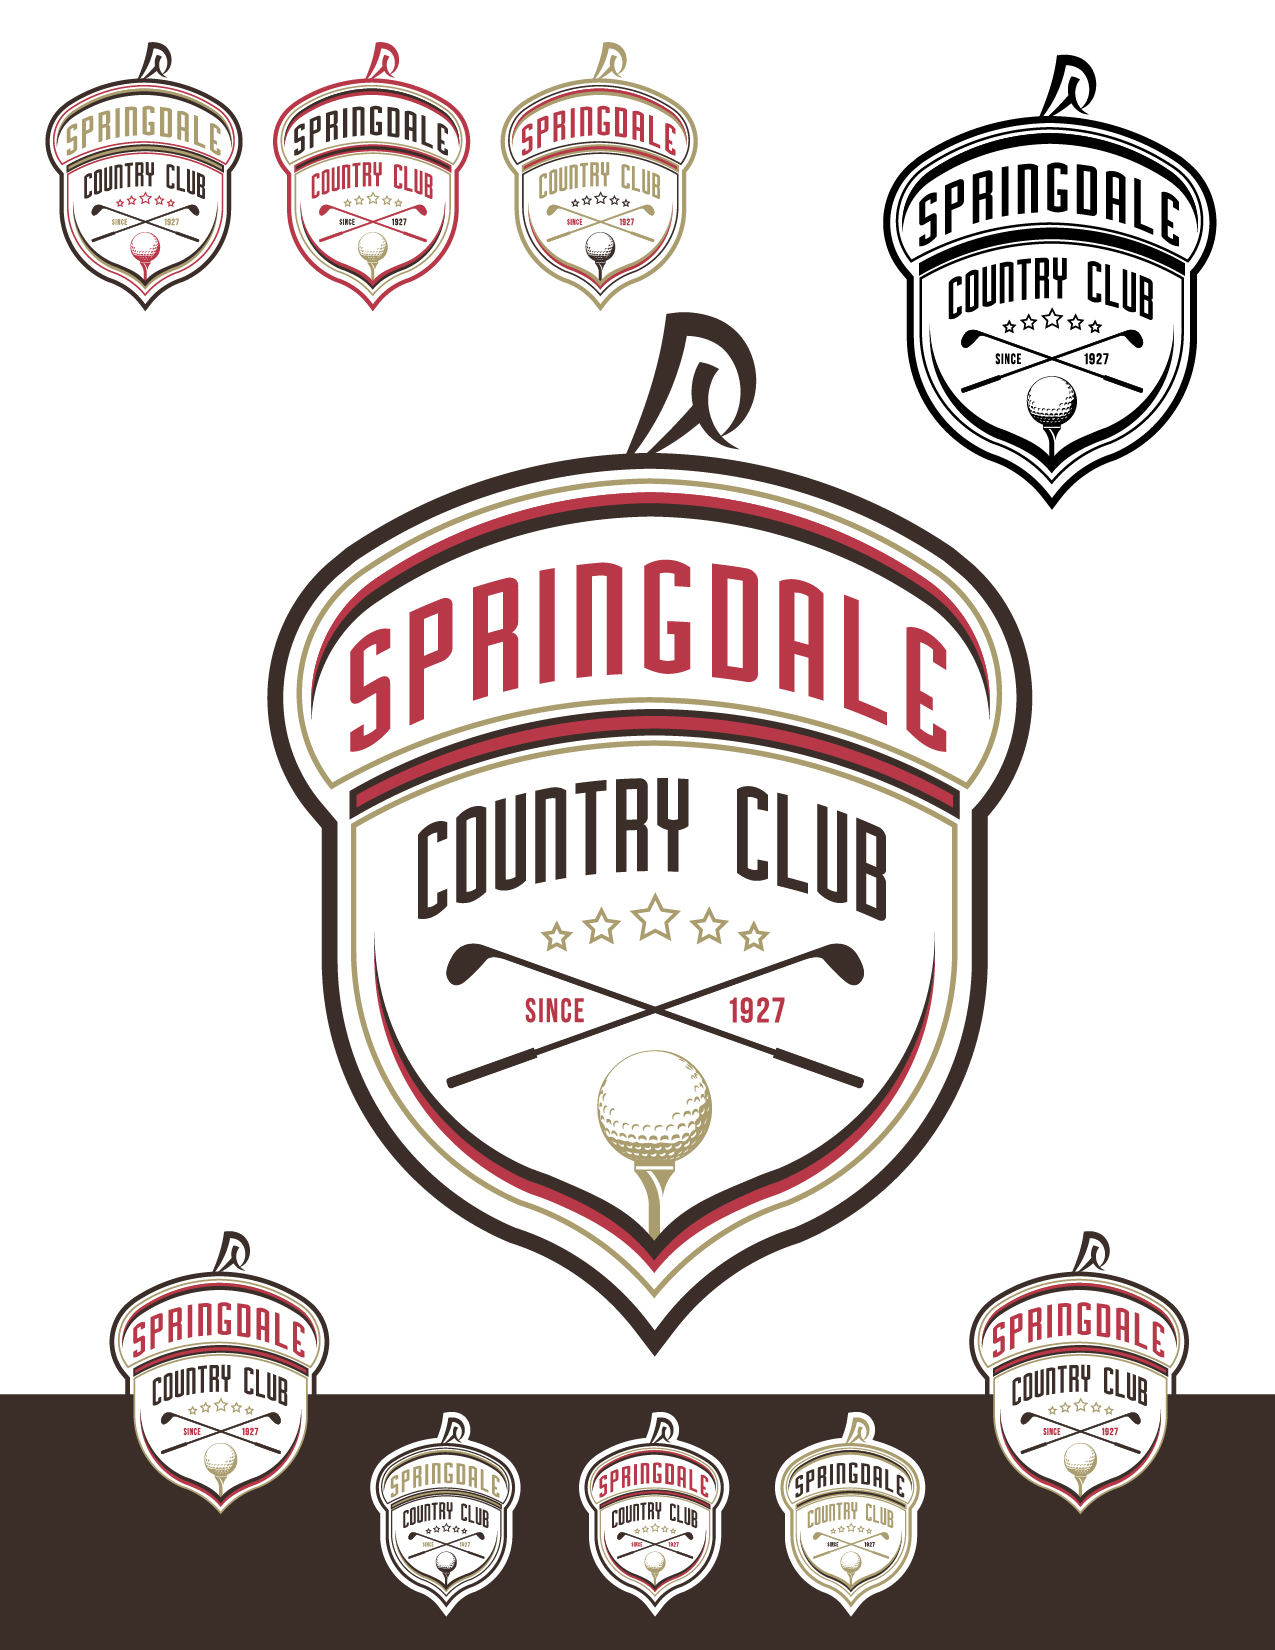 Logo Design by Jesus P Quiroga - Entry No. 84 in the Logo Design Contest Unique Logo Design Wanted for Springdale Country Club.